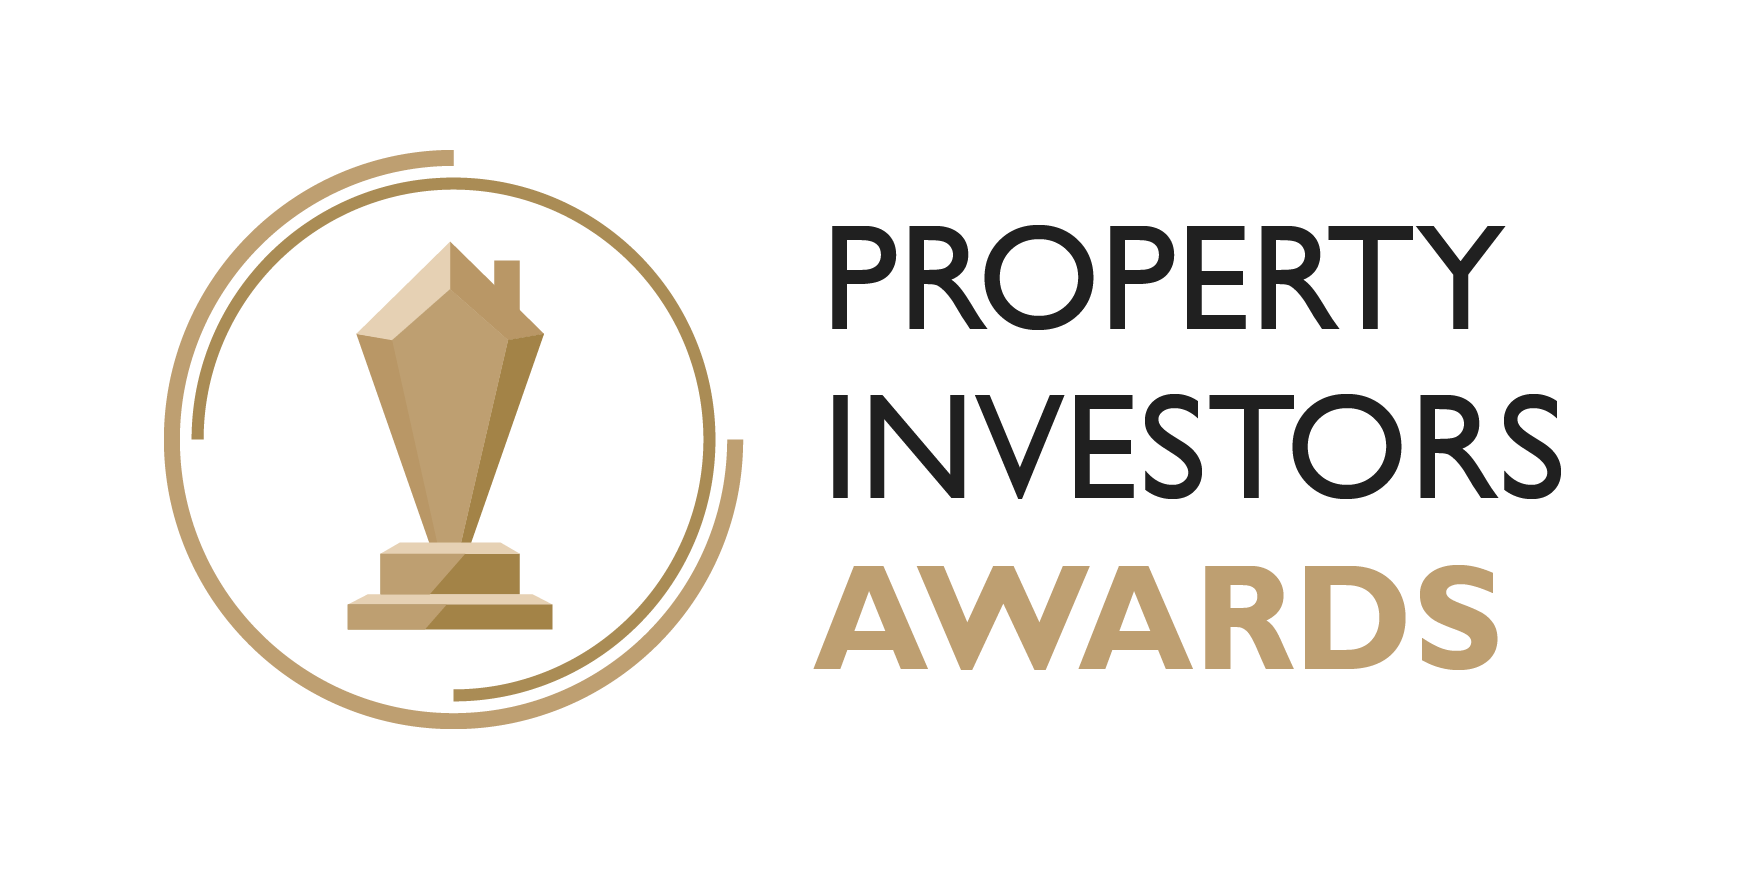 Property Investors Awards 2017